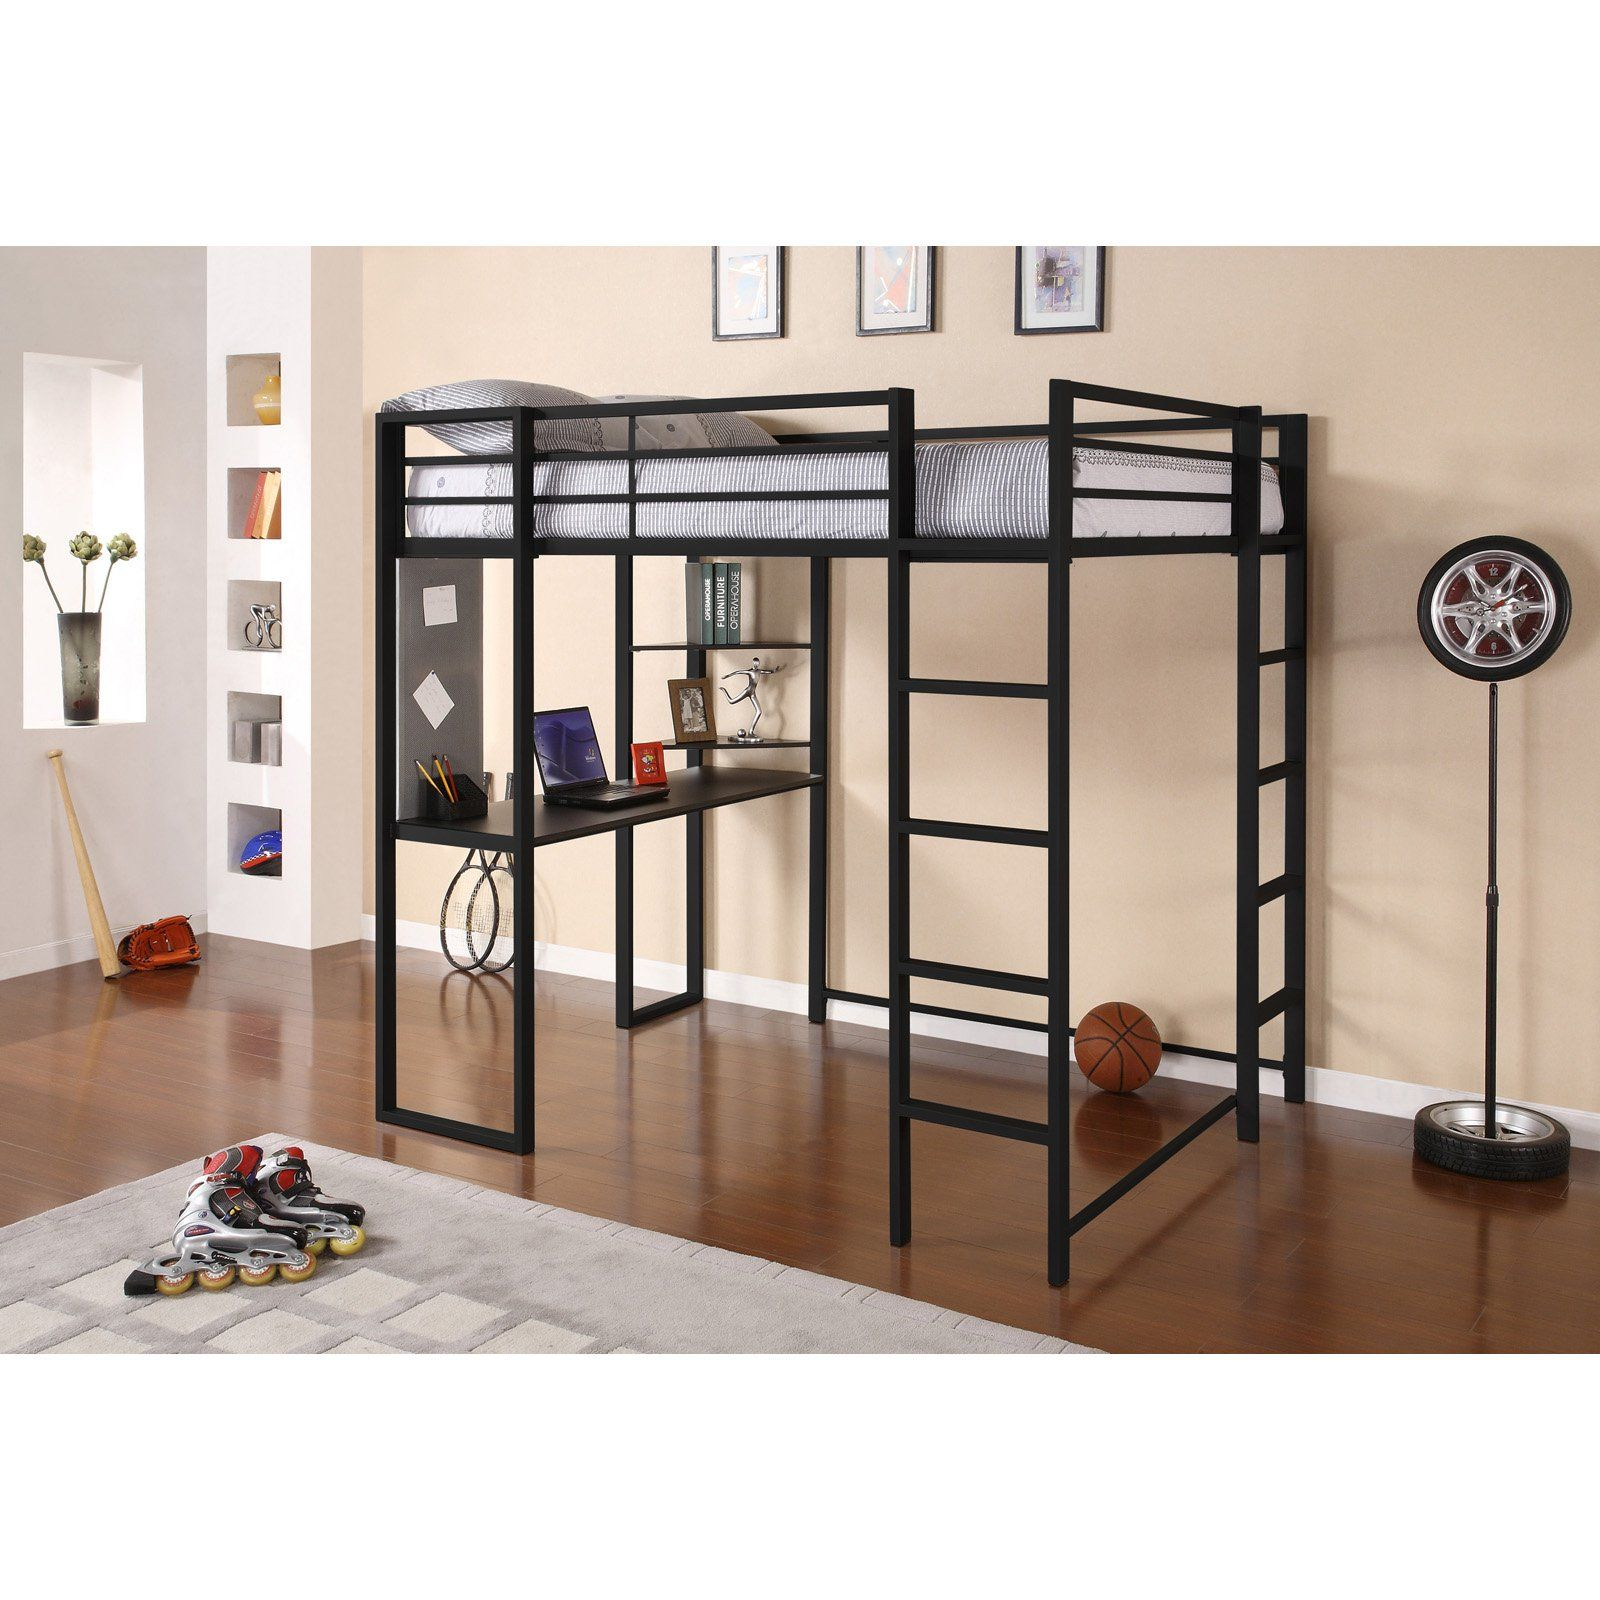 Duro Z Bunk Bed Loft With Desk Silver Modern Loft Bed Adult